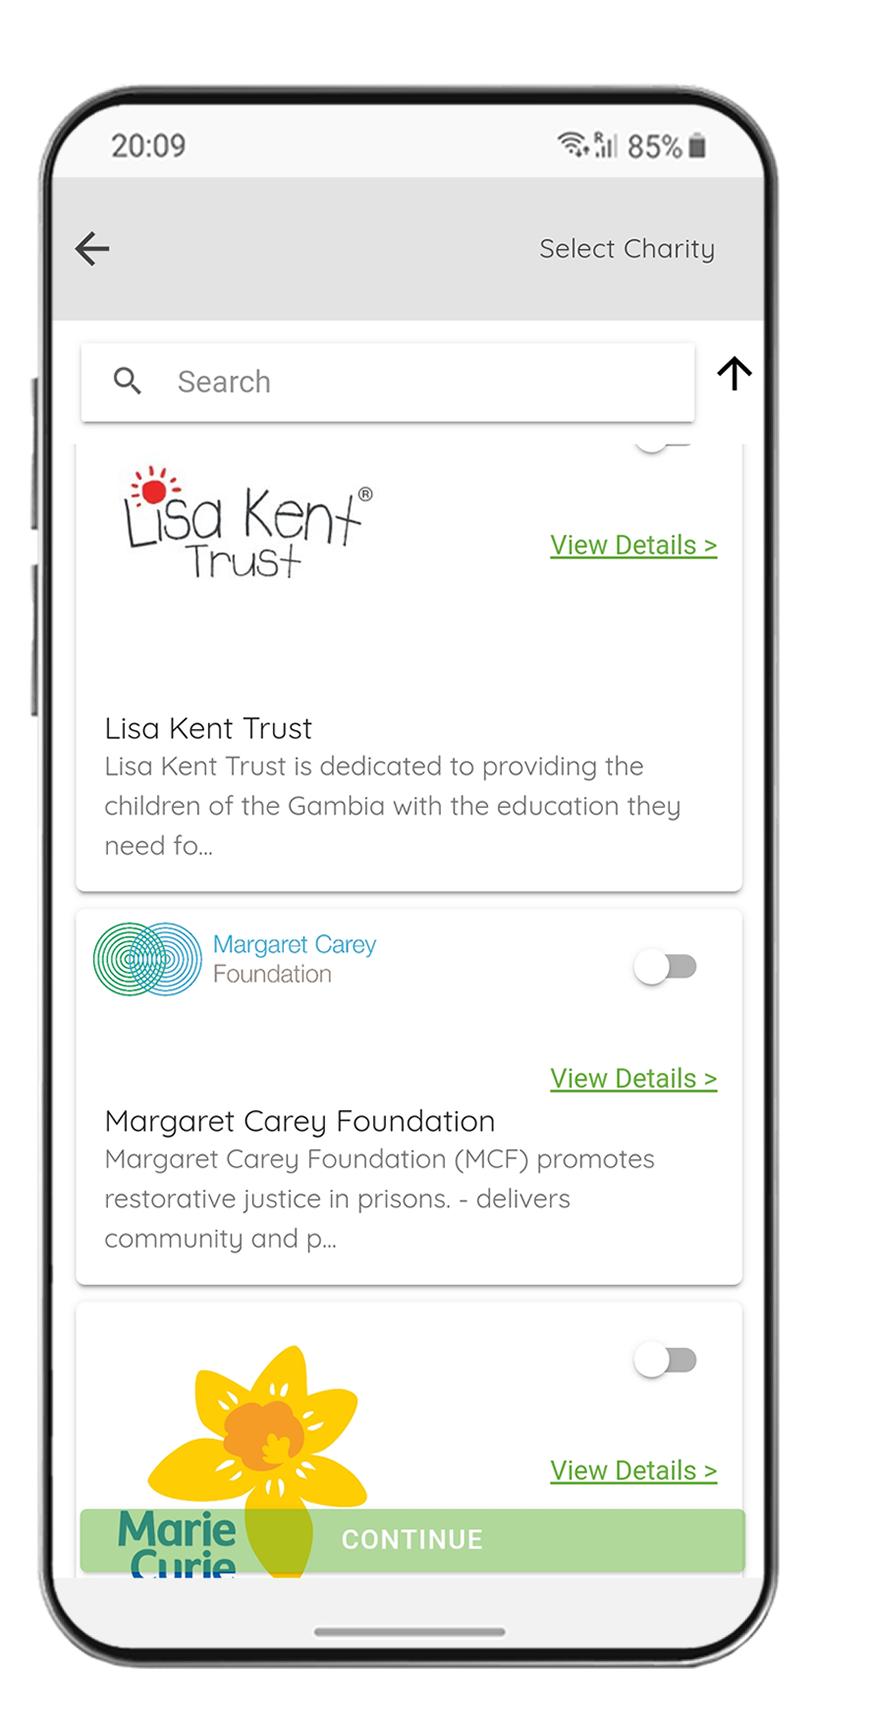 Select a charity screen